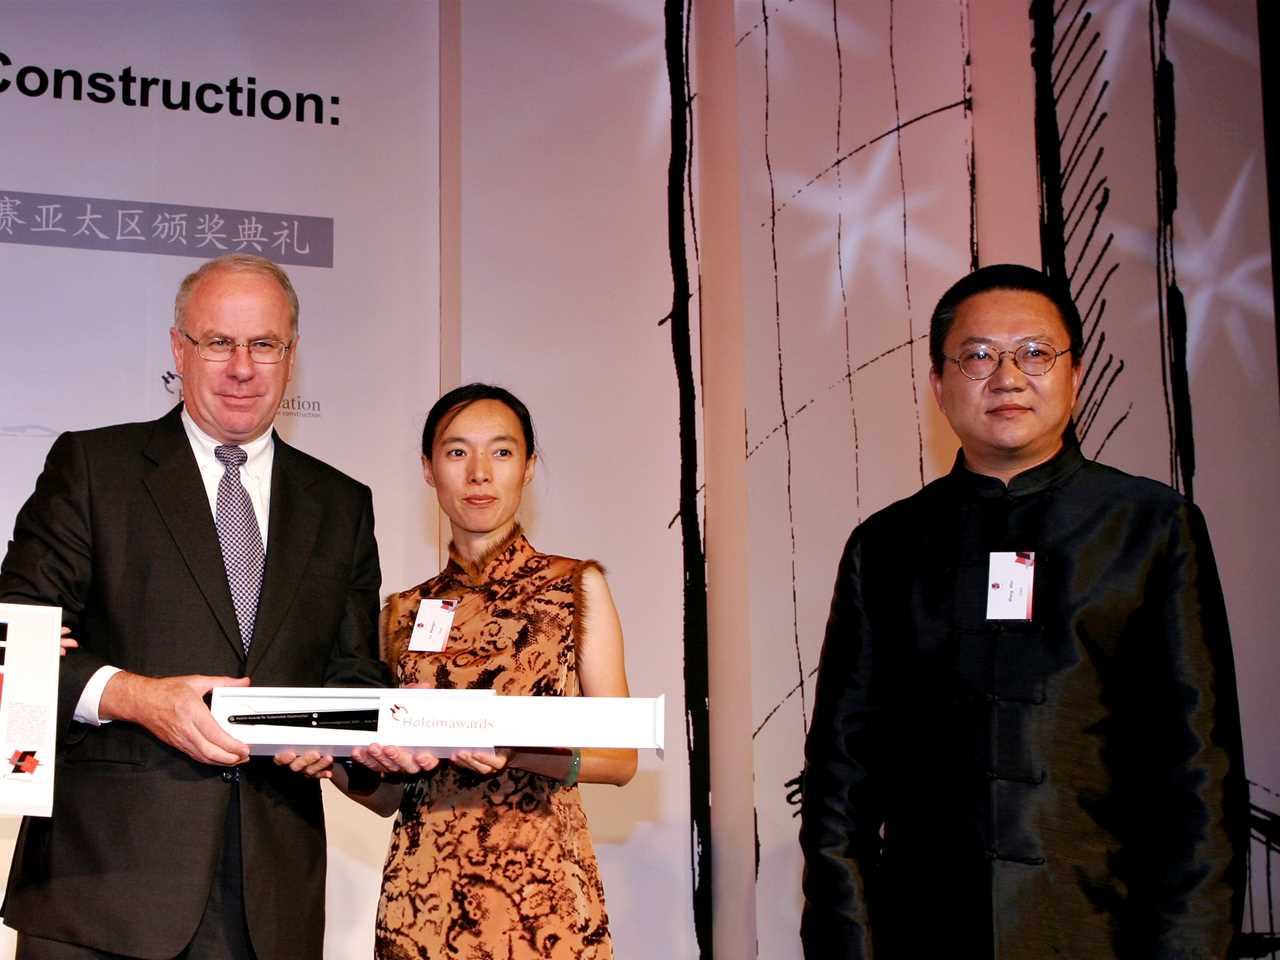 Acknowledgement prize (l-r): presented by P. Hugentobler (Holcim Ltd) to WANG Shu and LU Wenyu